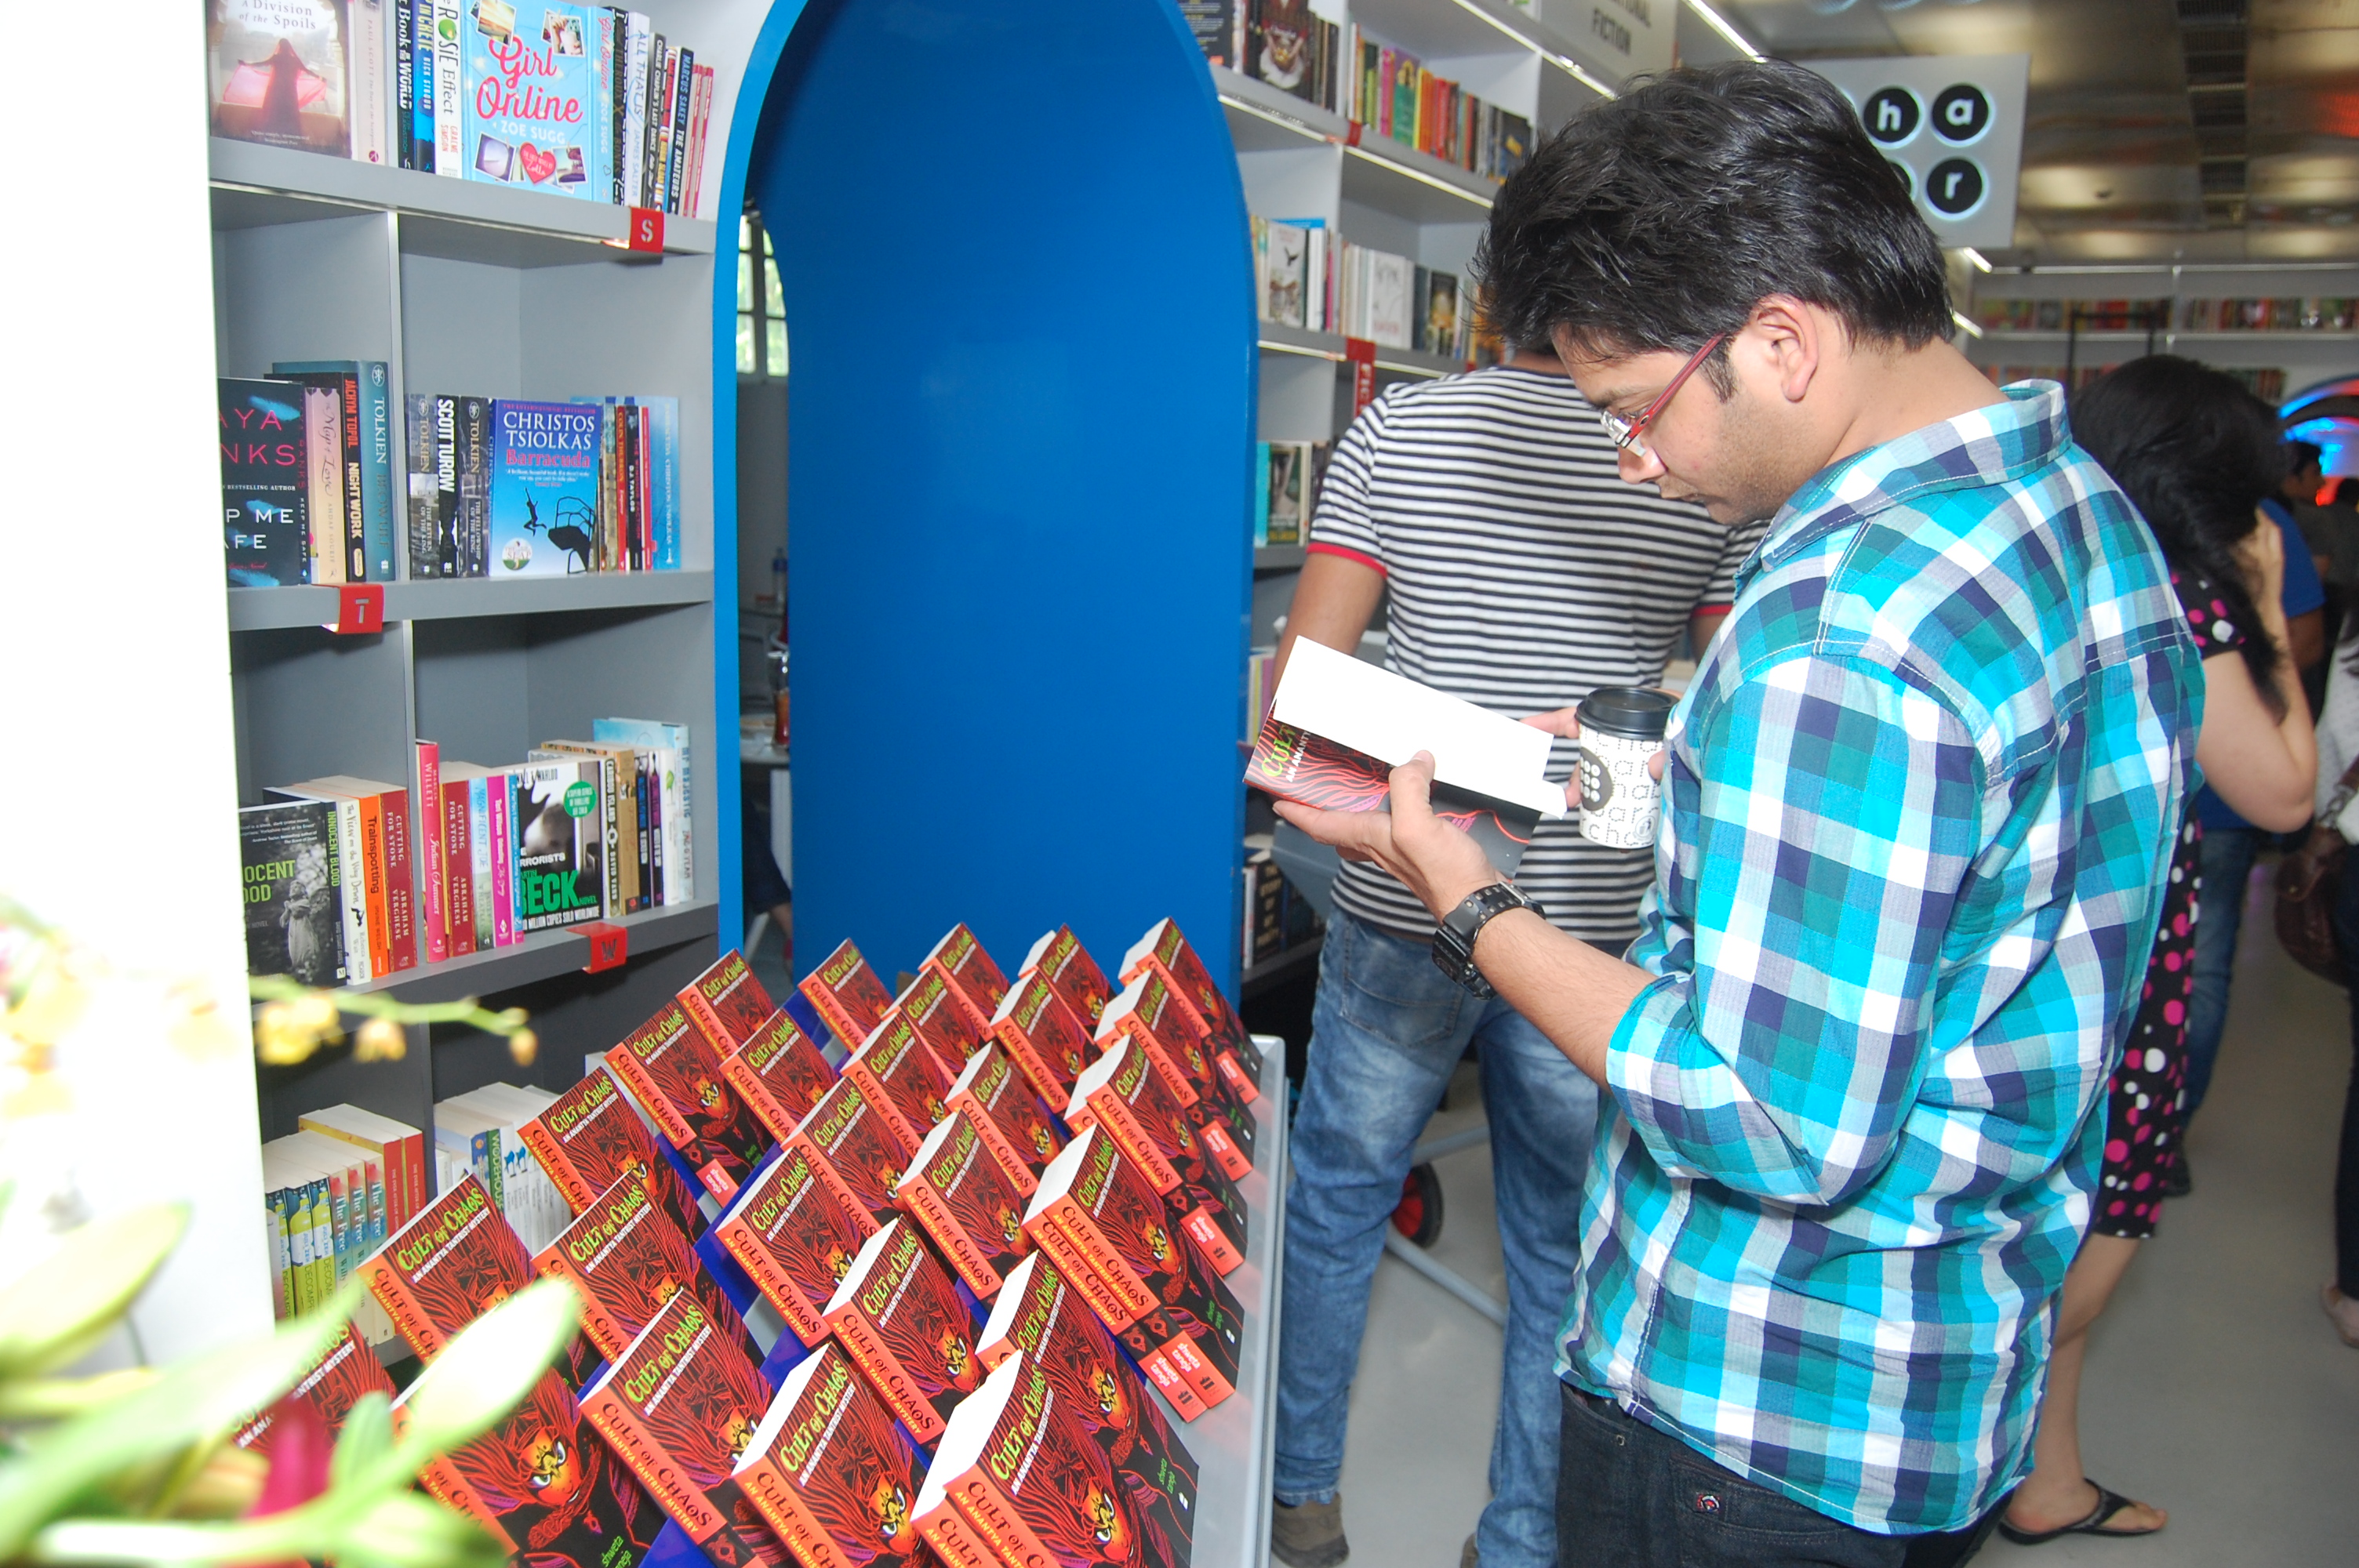 A stranger browsing the book. Isn't that nice!